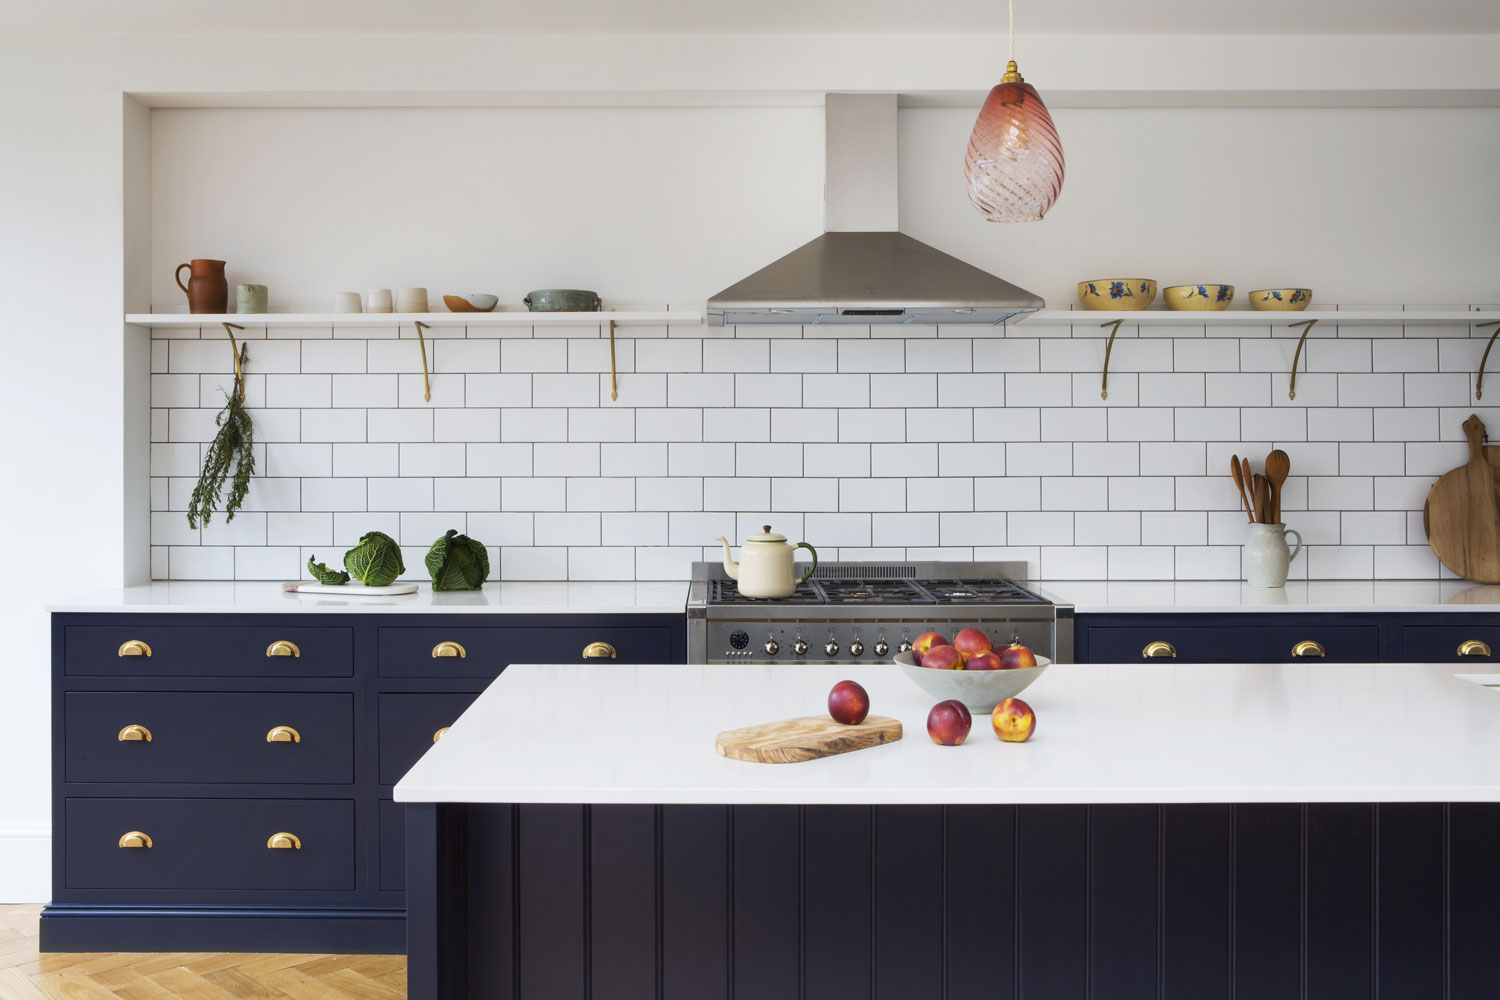 Bespoke Kitchen Design Dulwich - West & Reid